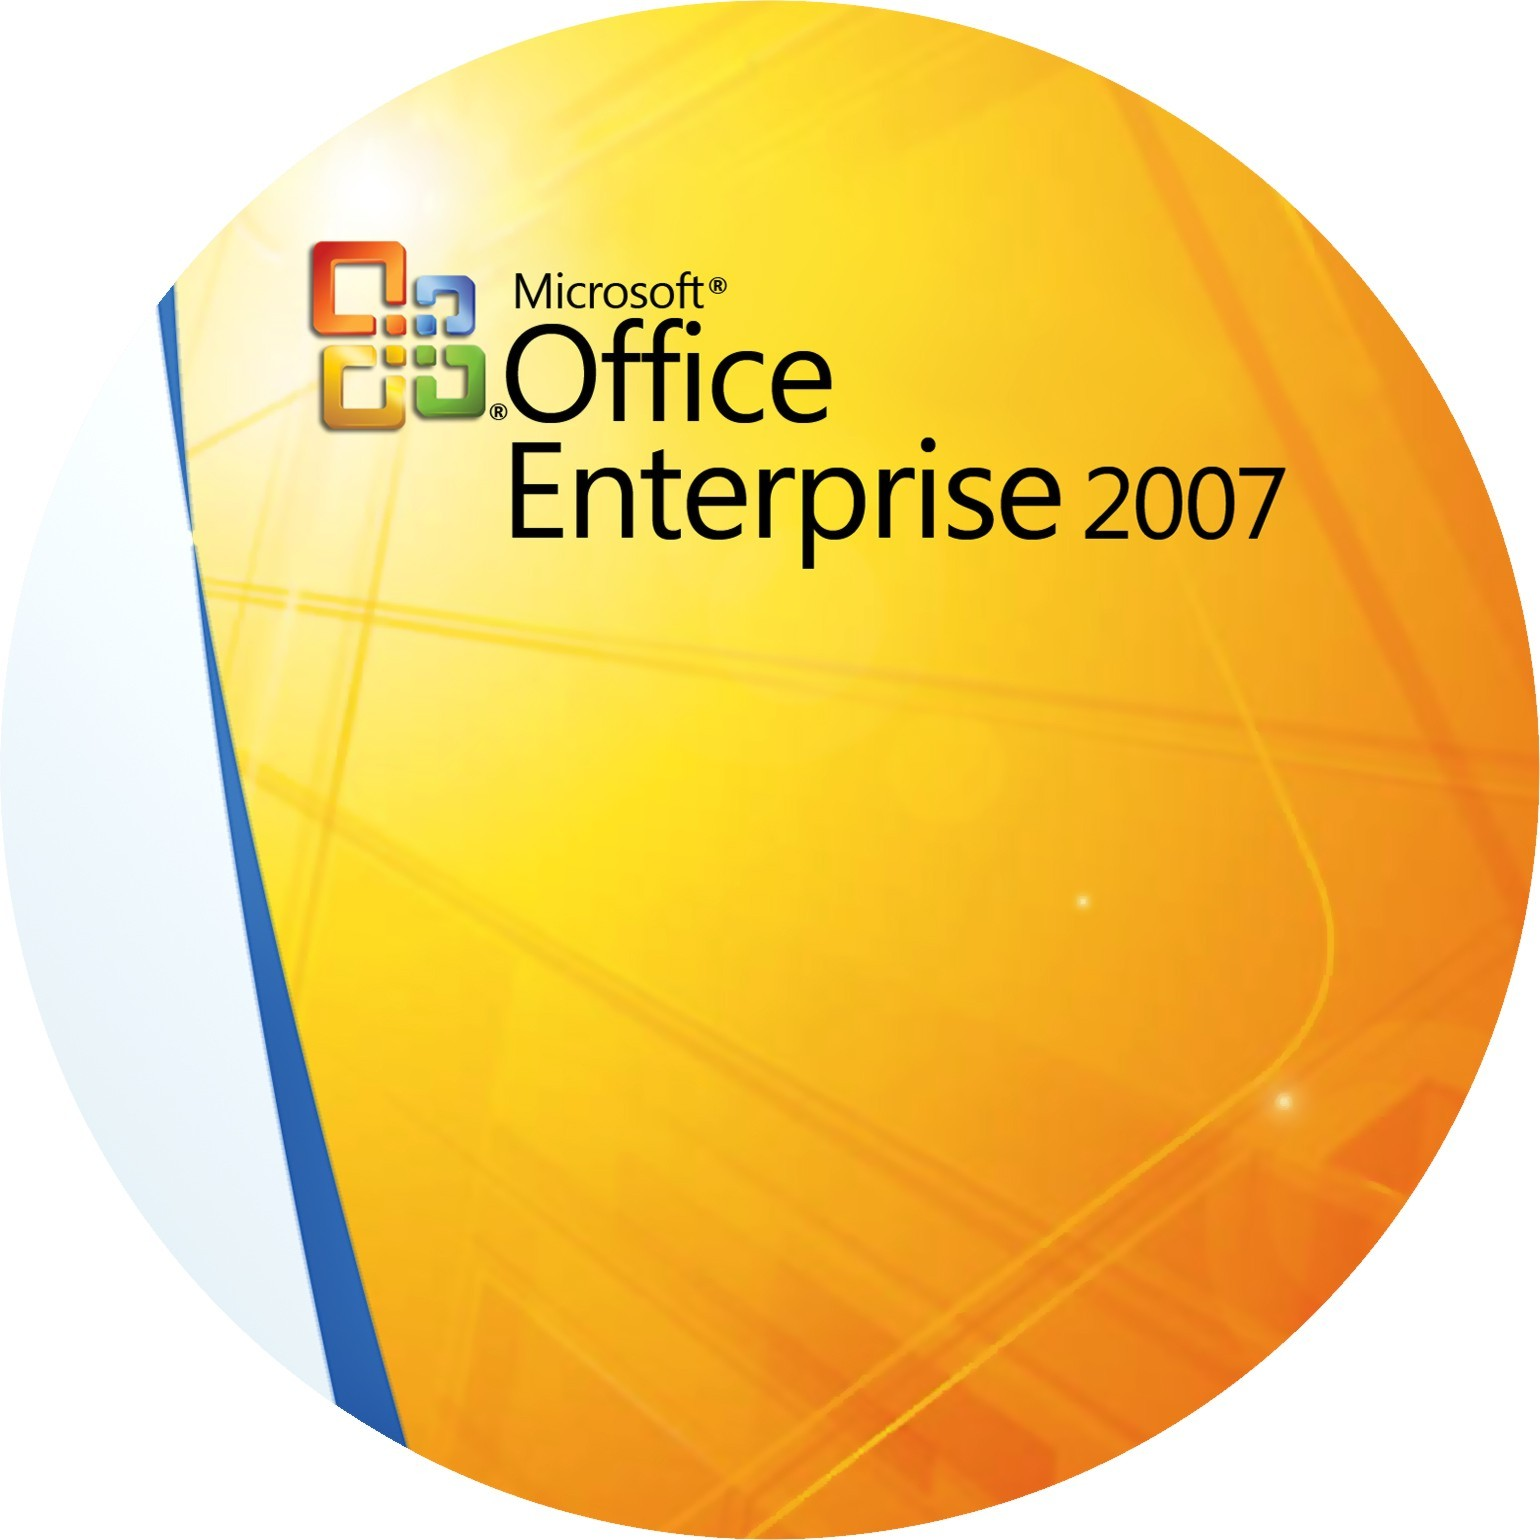 Pin Office 2007 Cd Cover Images On Pinterest